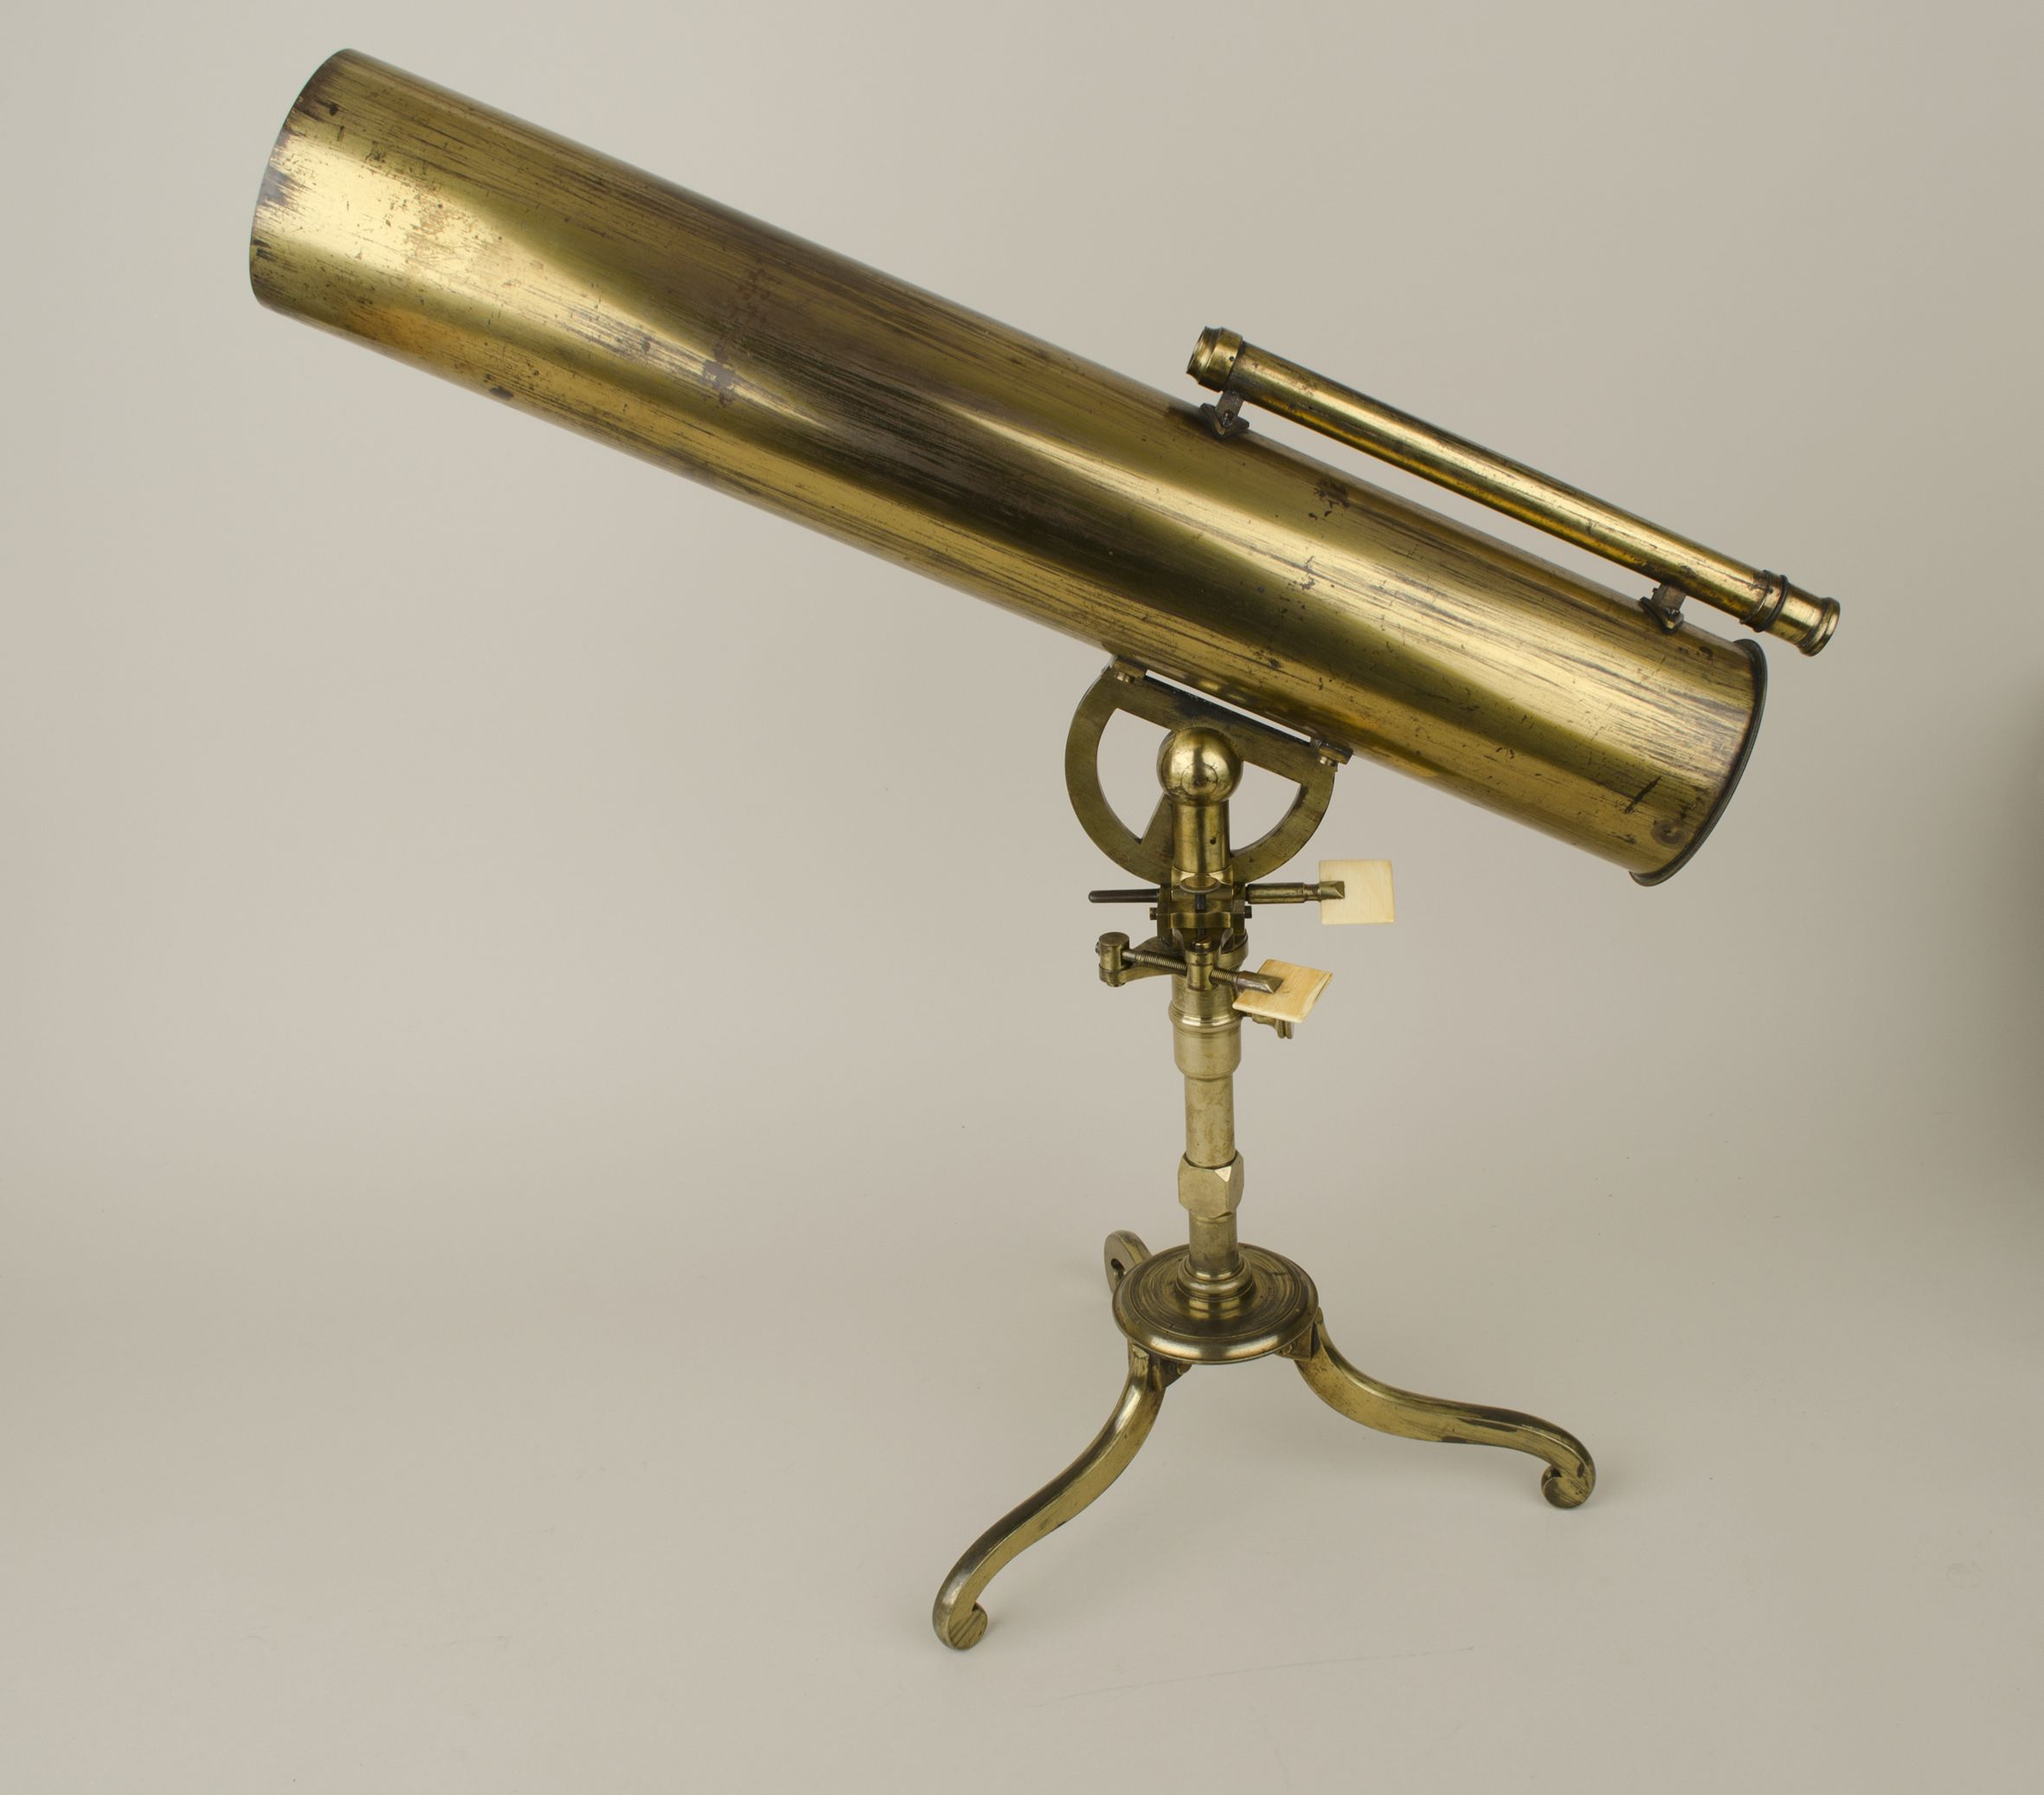 Reflecting telescope, James Short c.1770 (c) Whipple Museum of the History of Science, Cambridge